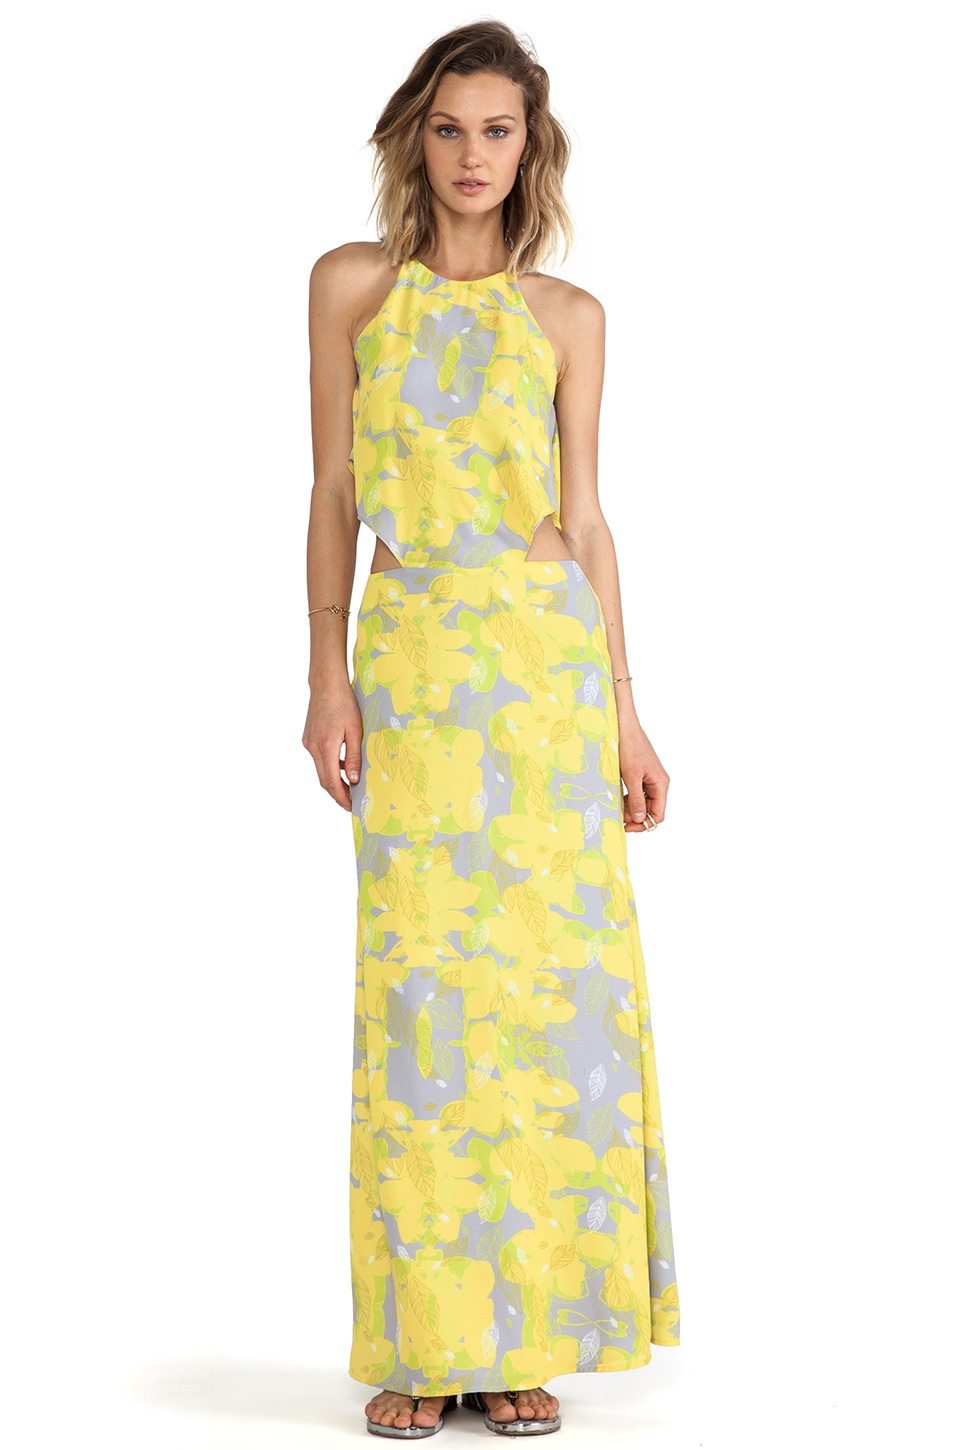 Boulee Cynthia Maxi Dress in Leaf Print